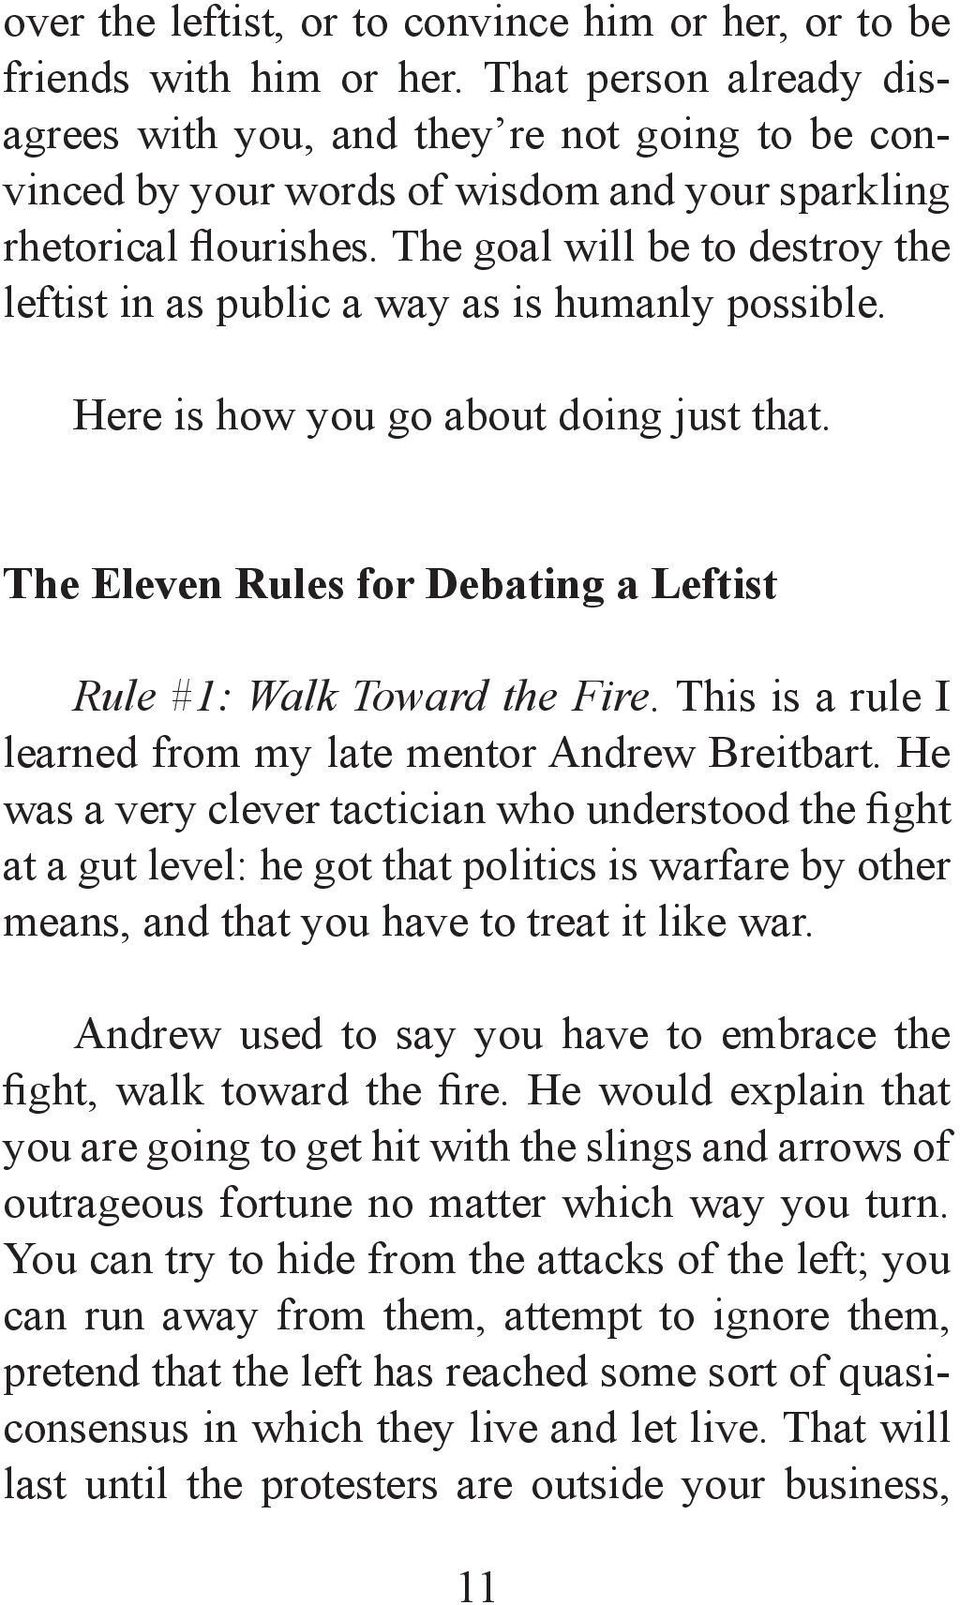 The goal will be to destroy the leftist in as public a way as is humanly possible. Here is how you go about doing just that. The Eleven Rules for Debating a Leftist Rule #1: Walk Toward the Fire.